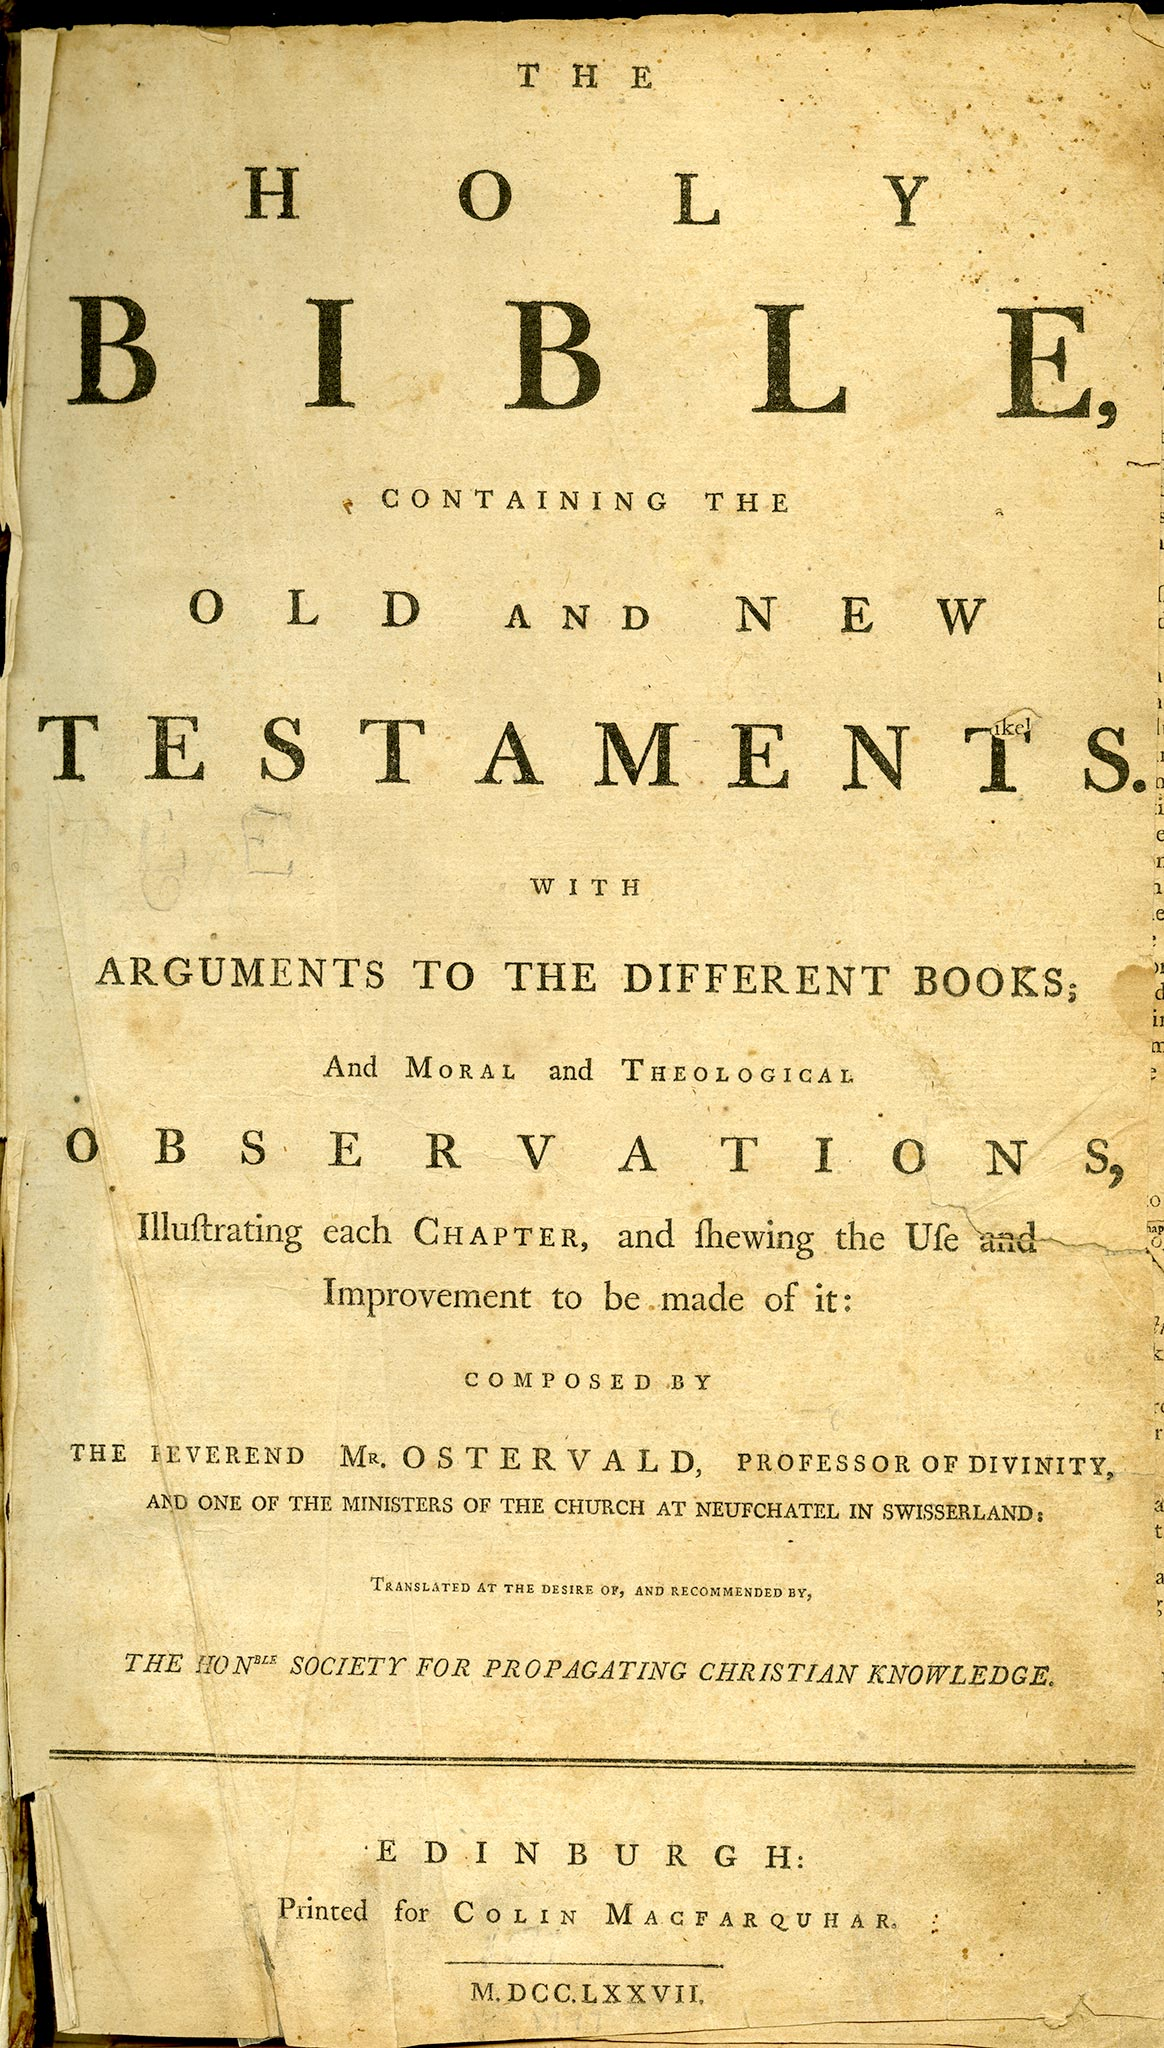 The Holy Bible with commentary by the Reverend Mr. Ostervald (1777). The Thomas Lincoln family owned and read the 1799 edition of this Bible MQ5215